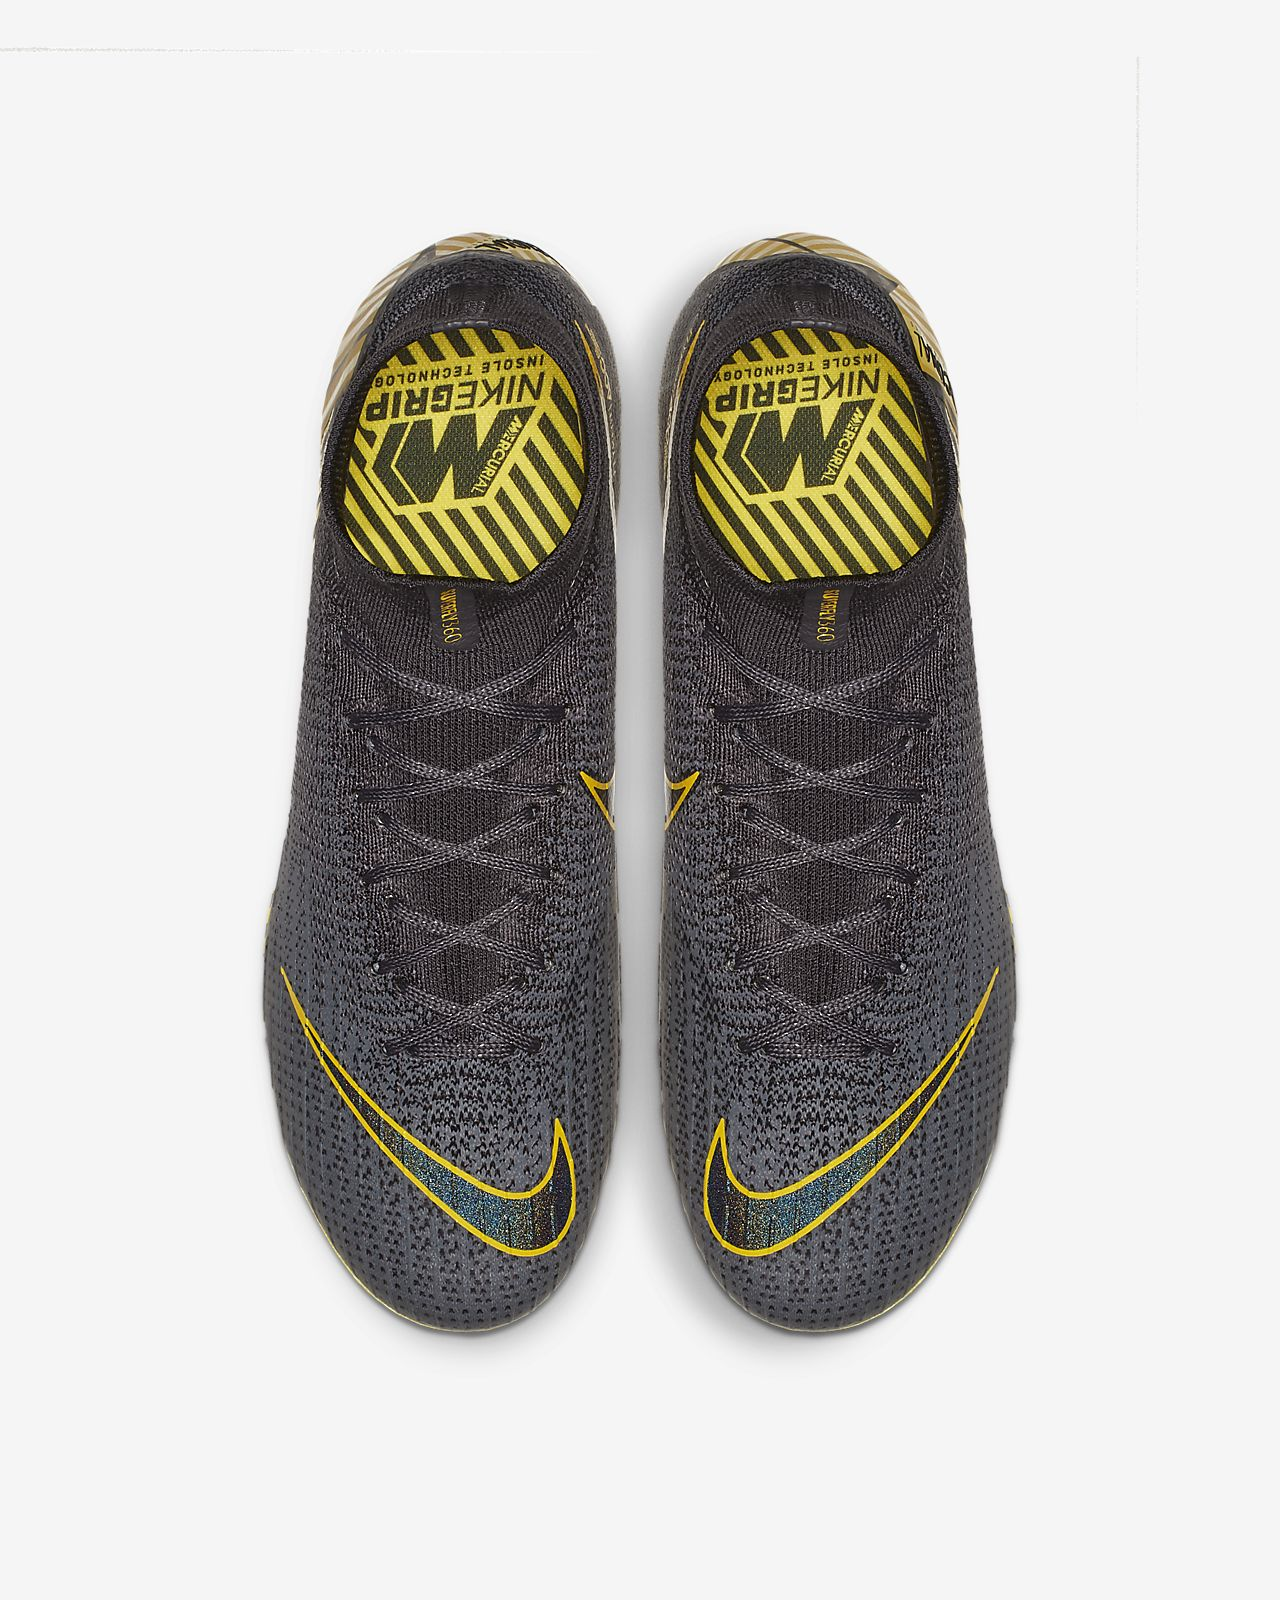 2b99fe27f Nike Superfly 6 Elite FG Game Over Firm-Ground Soccer Cleat. Nike.com